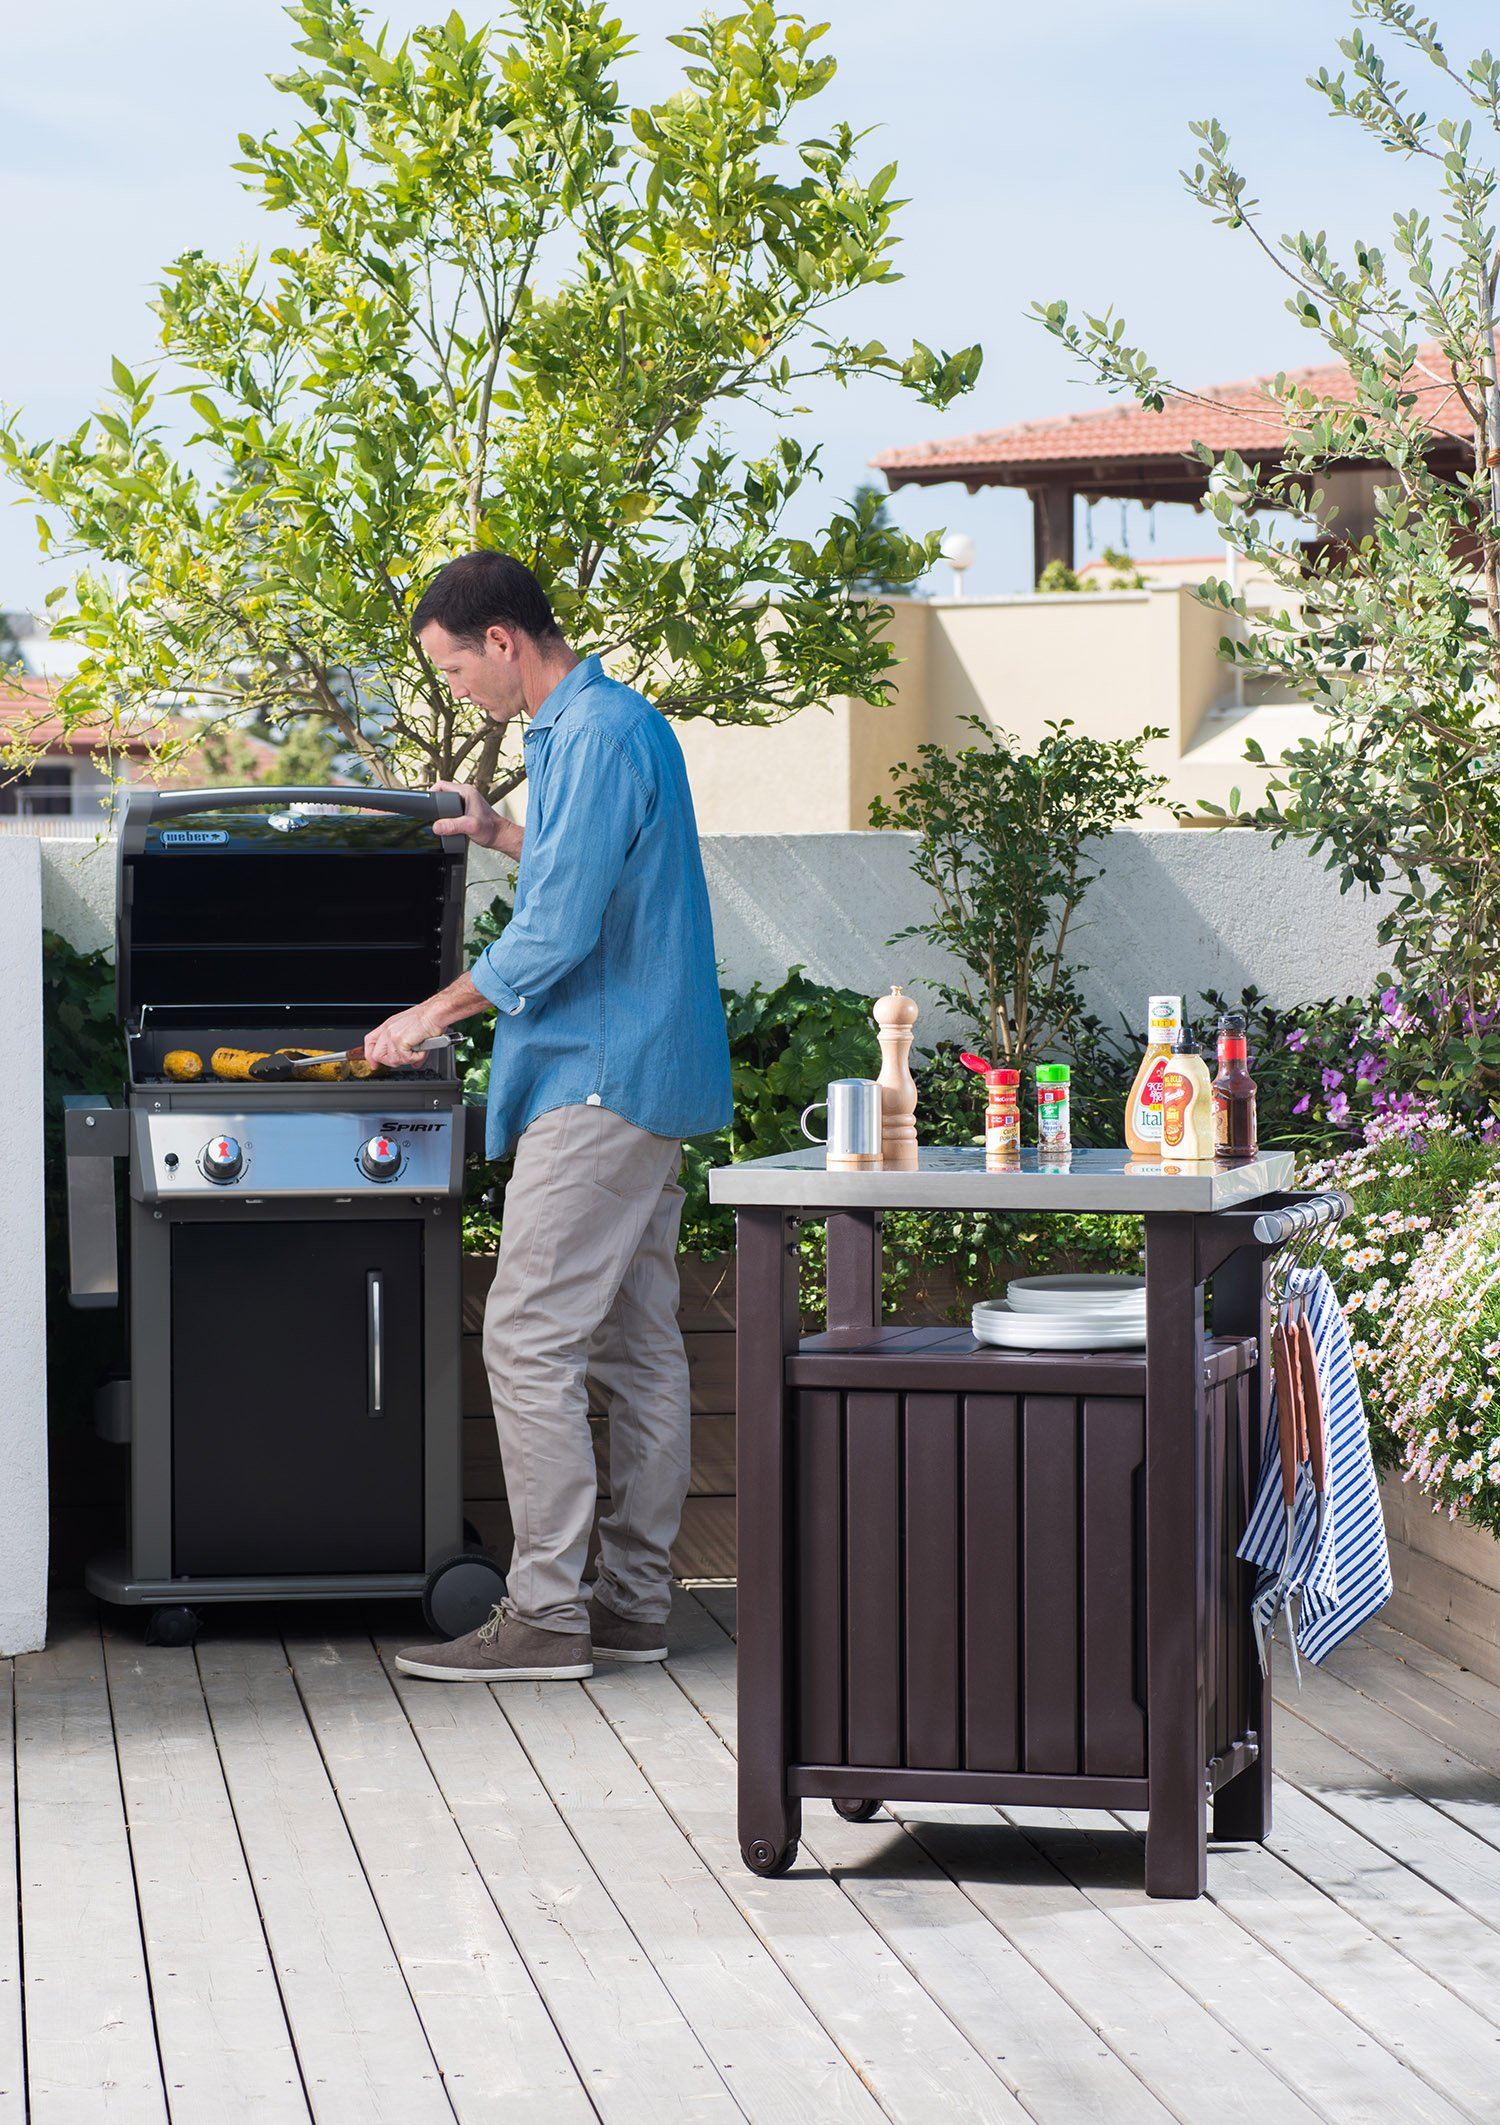 Outdoor Prep Station Serving BBQ Grilling Patio Deck Cabinet Backyard Table by Keter Products (Image #2)